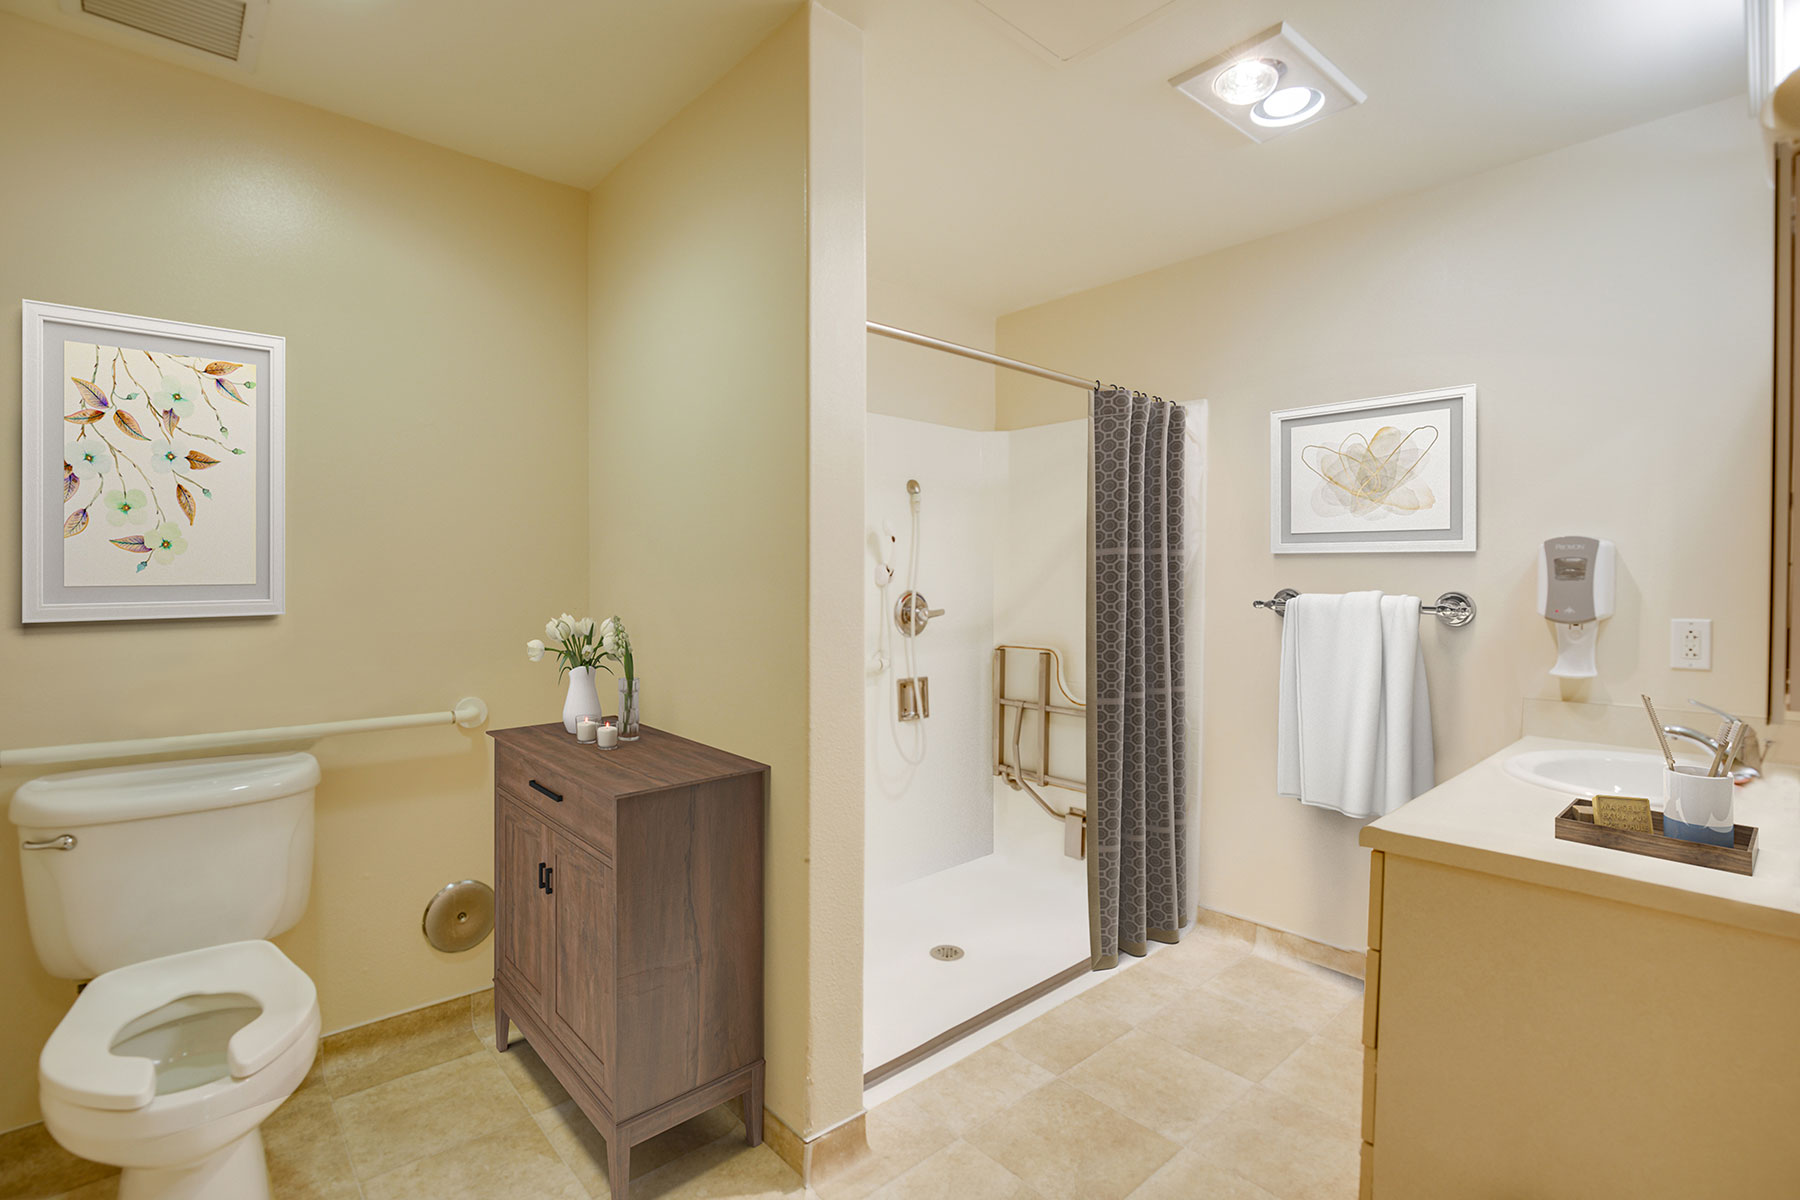 Large bathroom with shower and handicapped accessible bars and equipment.